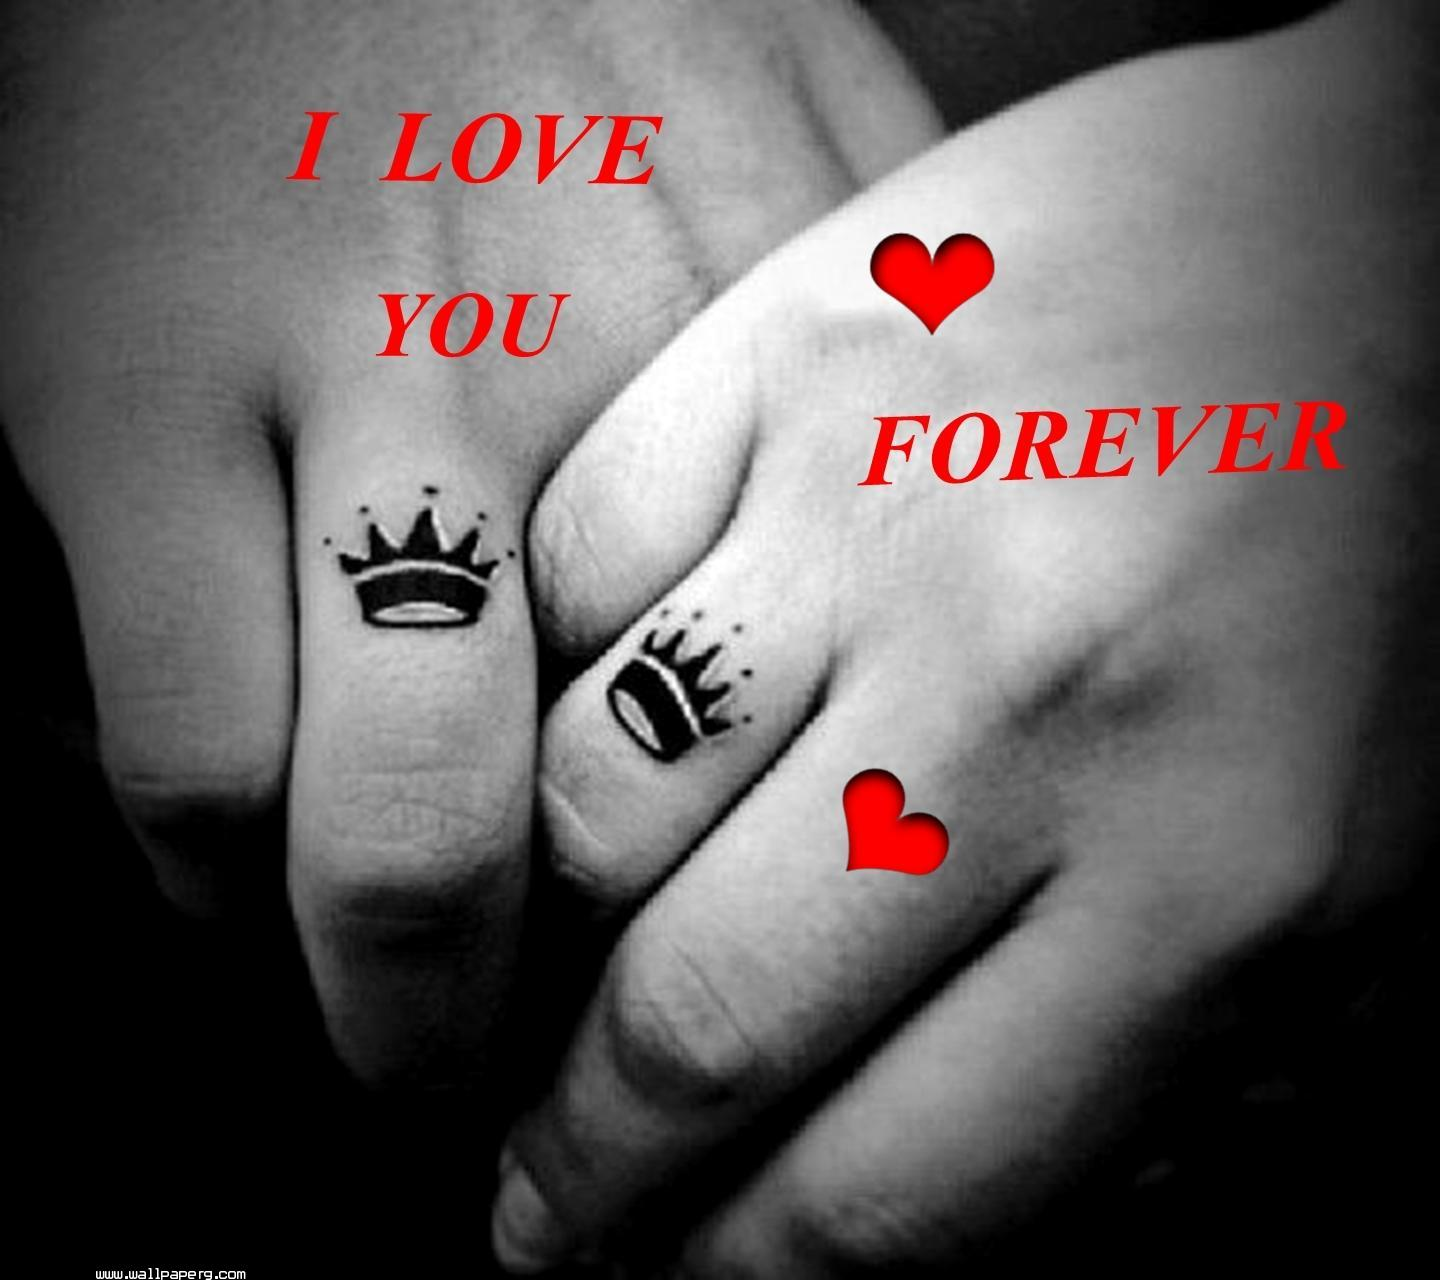 L Love You Hd Wallpaper : Download I love you alwaysi l - Heart touching love quote for your mobile cell phone